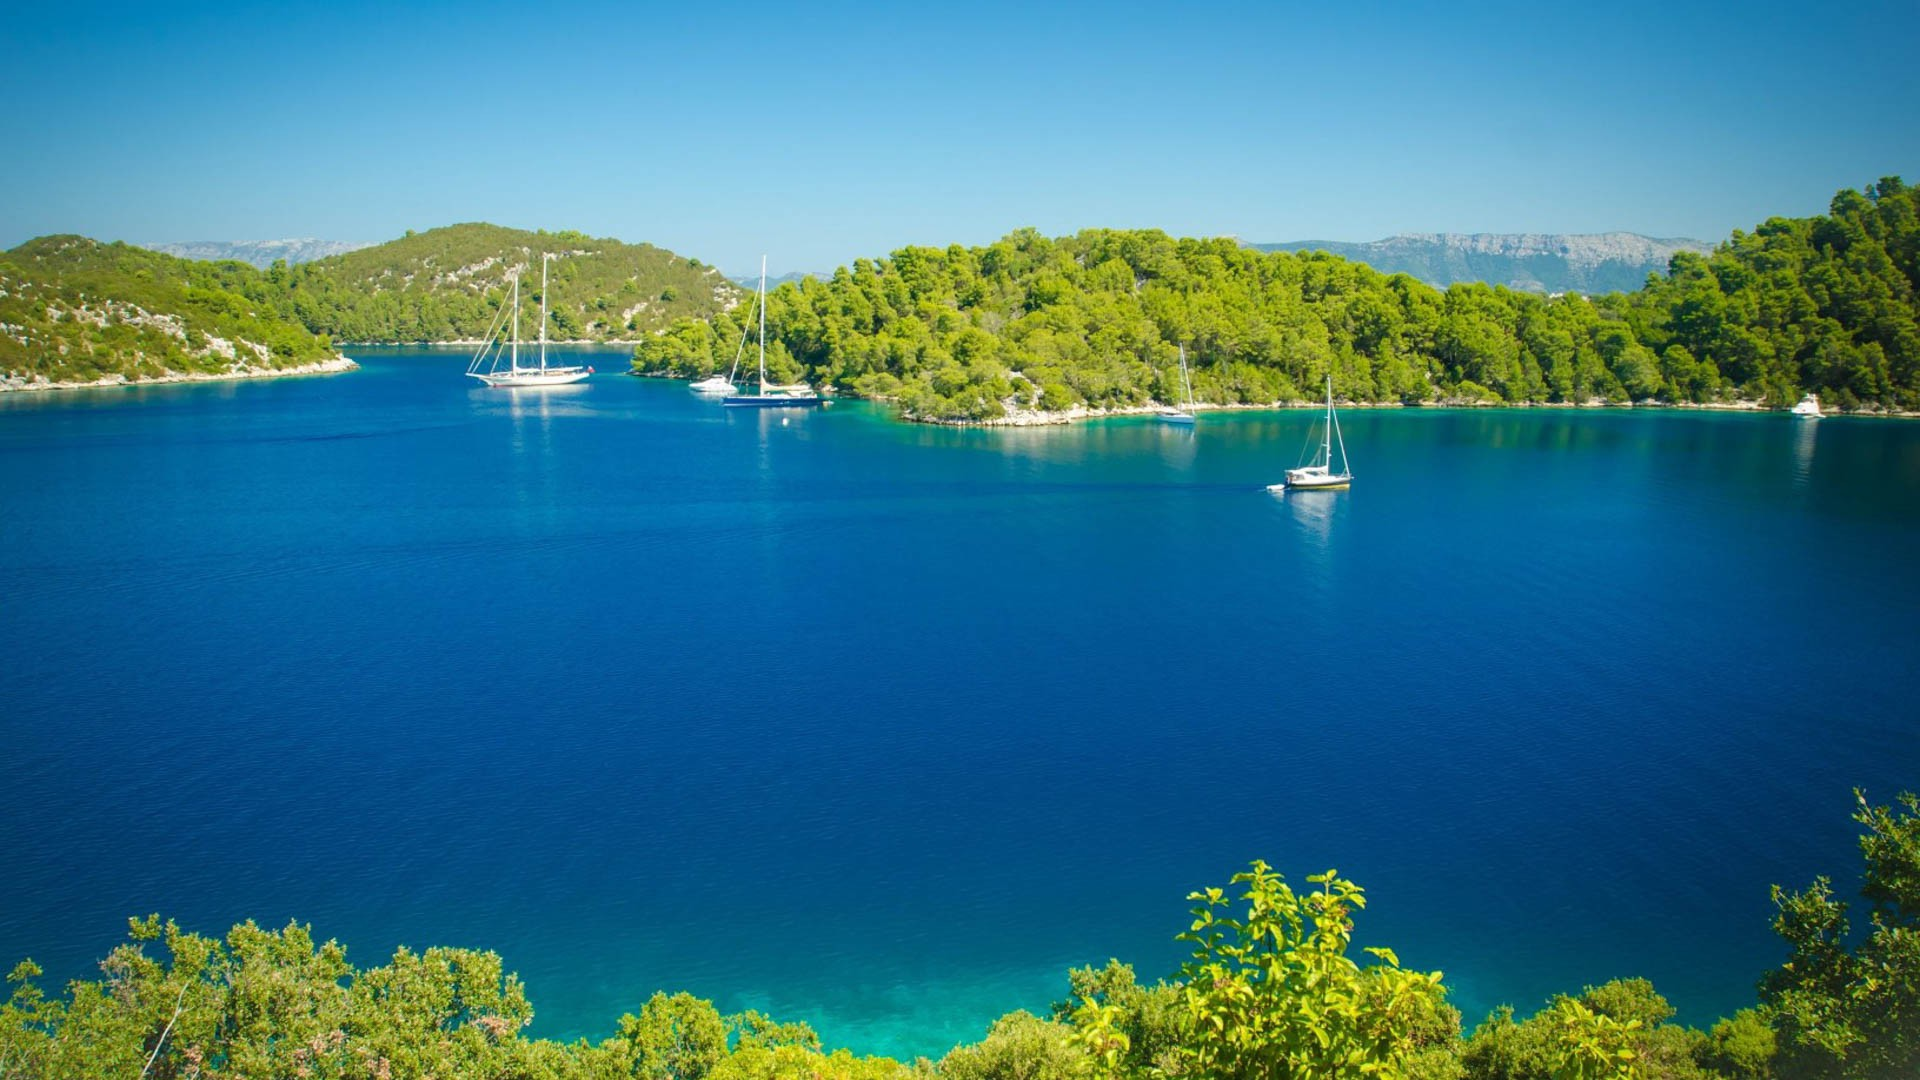 National Park Mljet - Adriatic Sea | Croatia Cruise Croatia Cruise